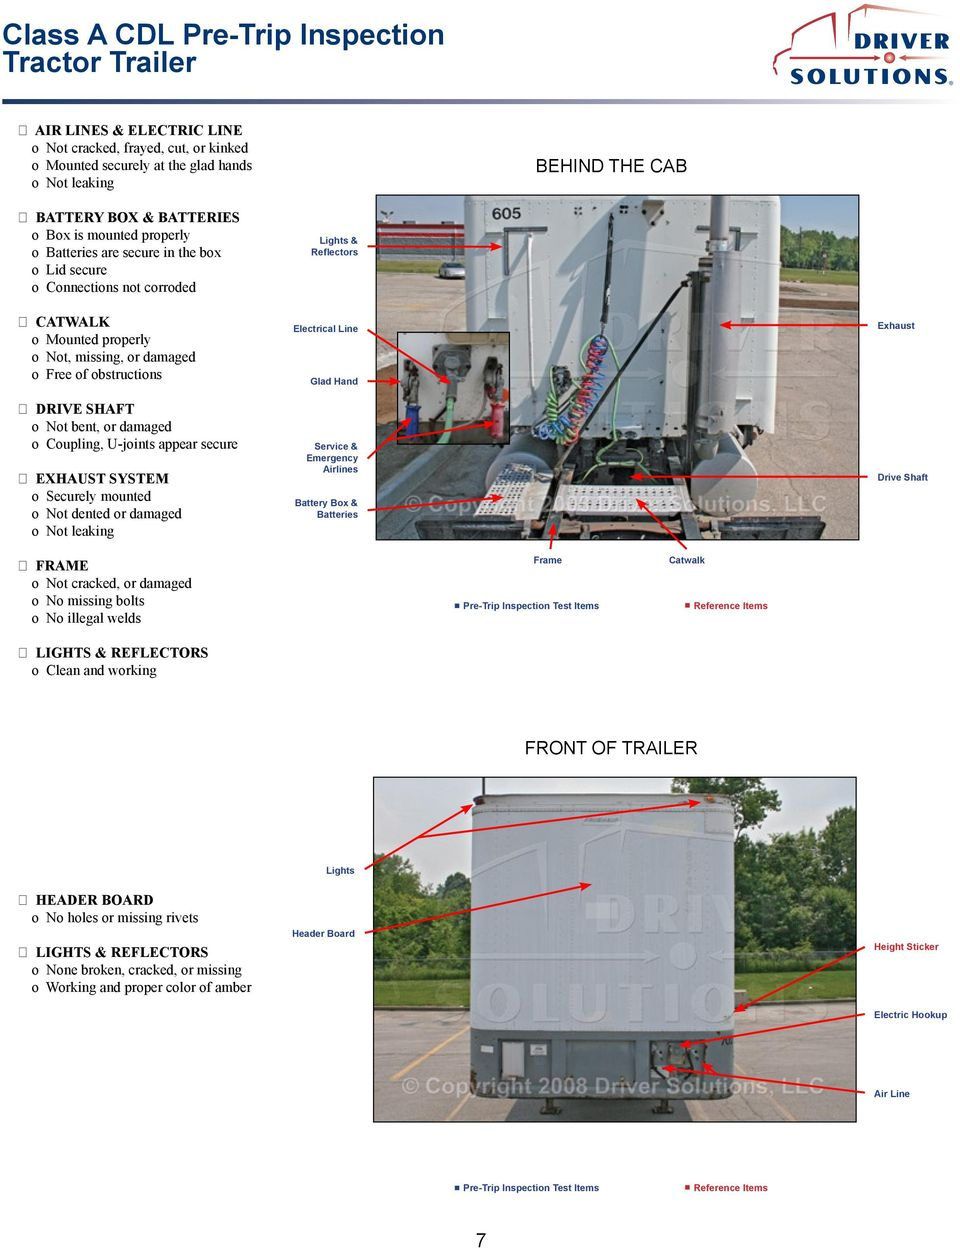 Class A Cdl Pre Trip Inspection Tractor Trailer Pdf 04 Duramax Fuel Filter Housing Or Damaged Lights Reflectors Electrical Line Glad Hand Service Emergency Airlines Battery Box